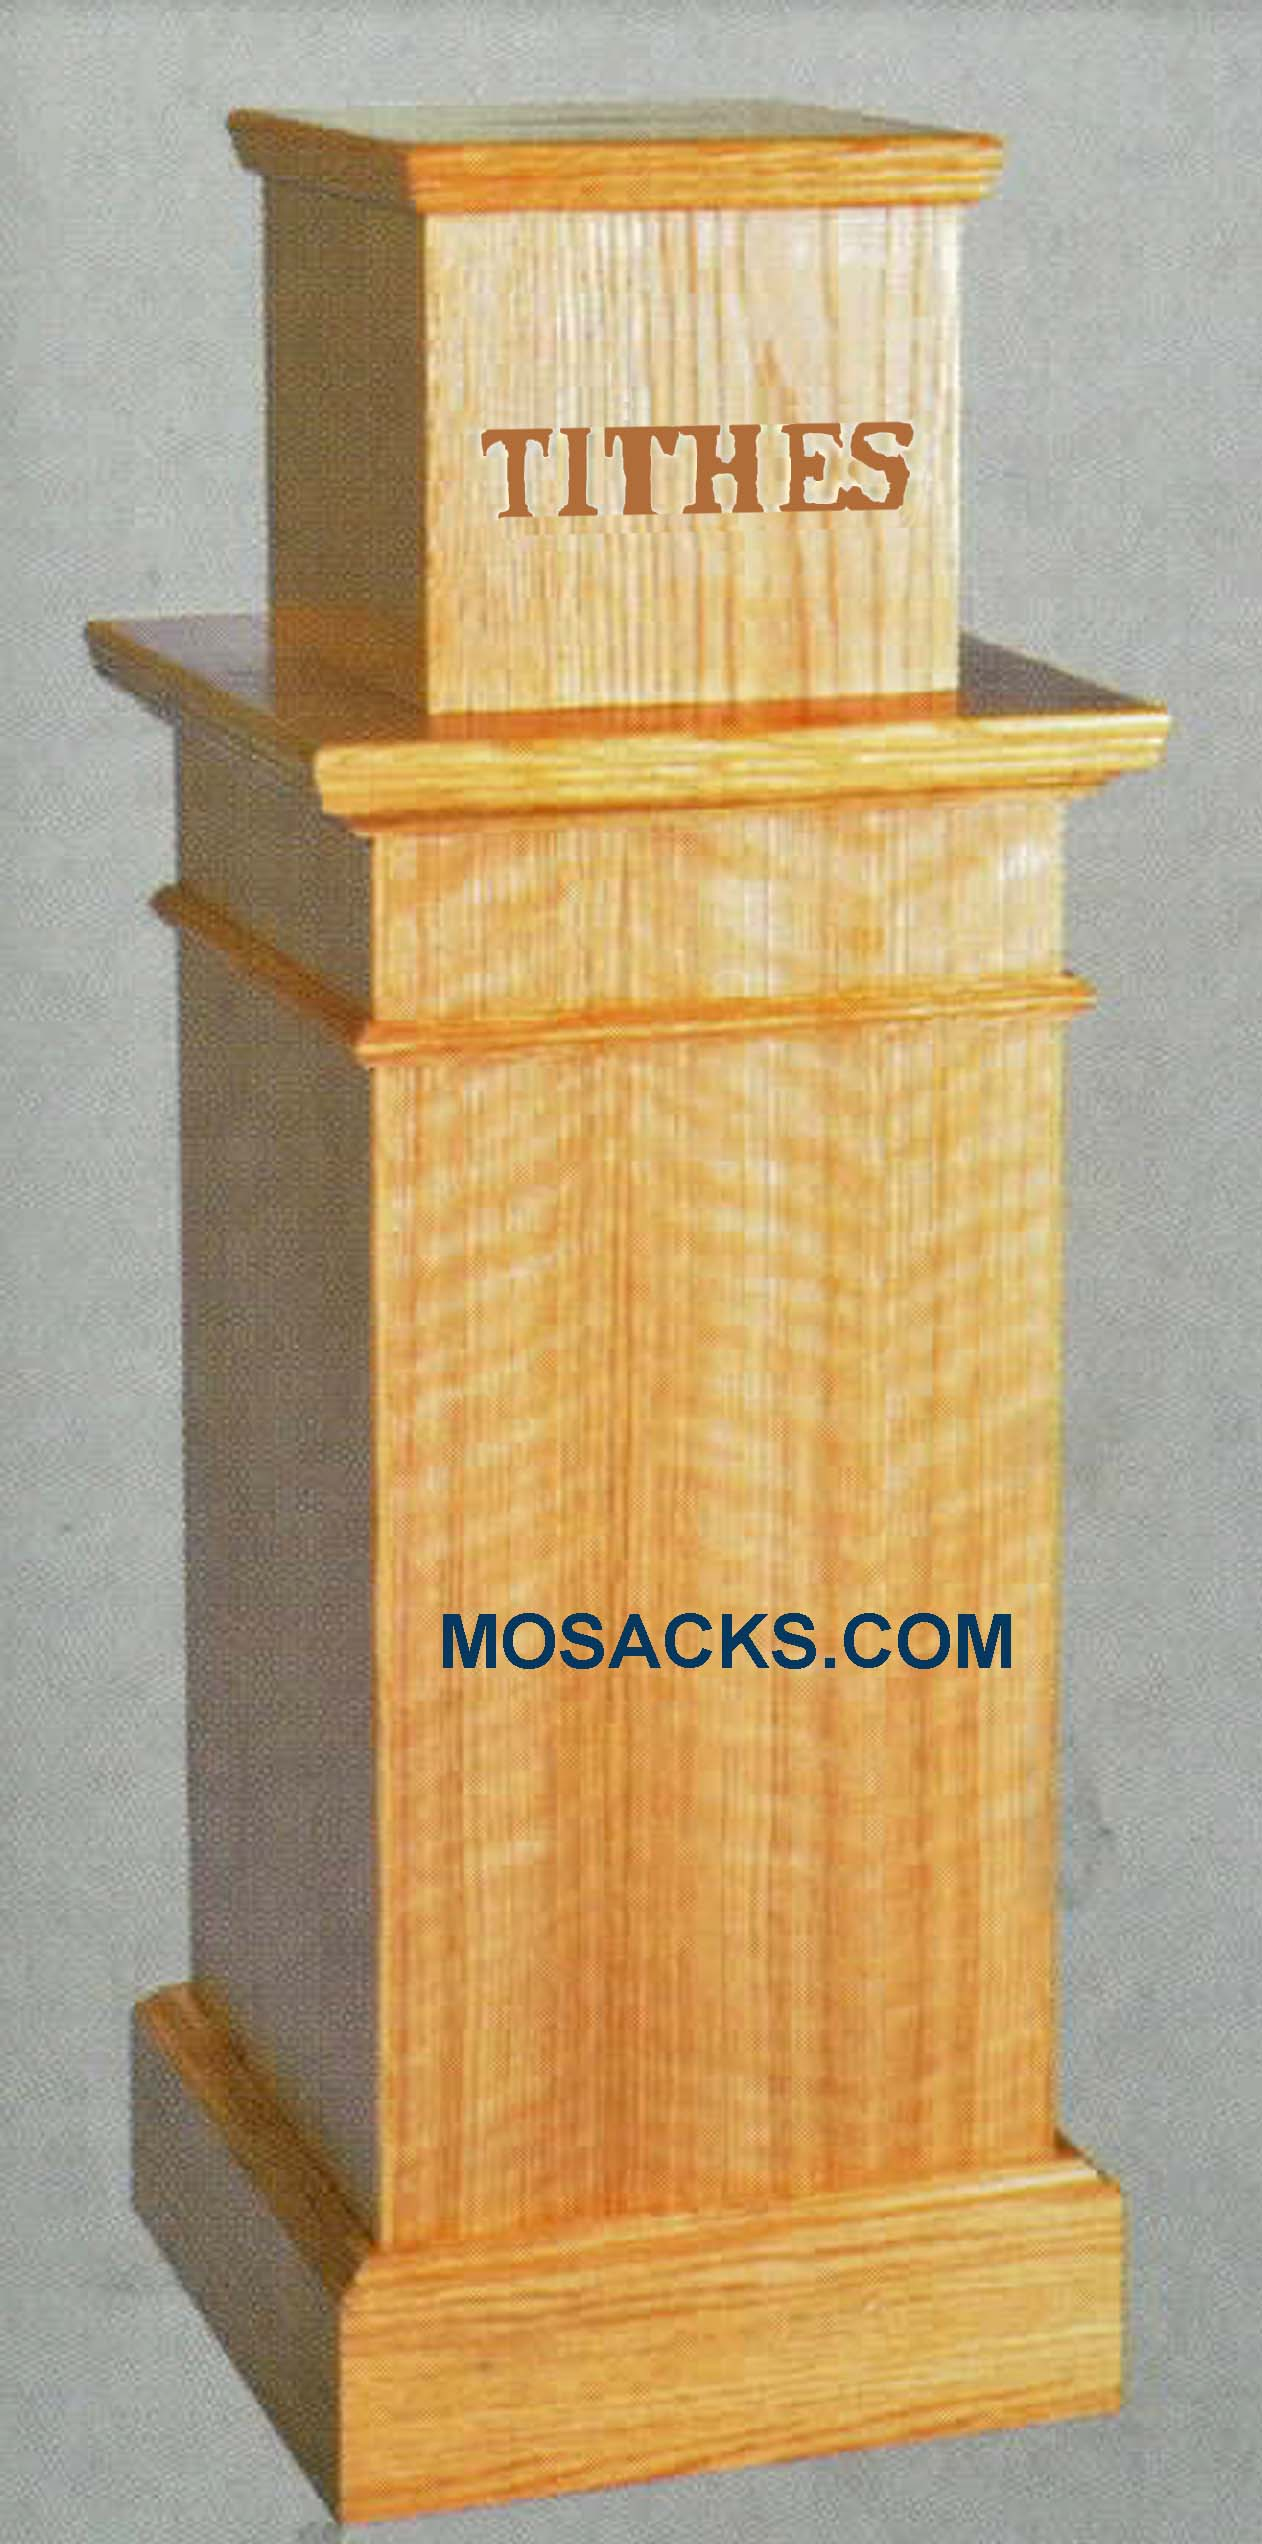 "Wooden TITHES  Box with Lettering, without light 16"" w x 16"" x d x 42"" h 1161 various wood stains available  lock, door and bag,  TITHES on the front, 1161"